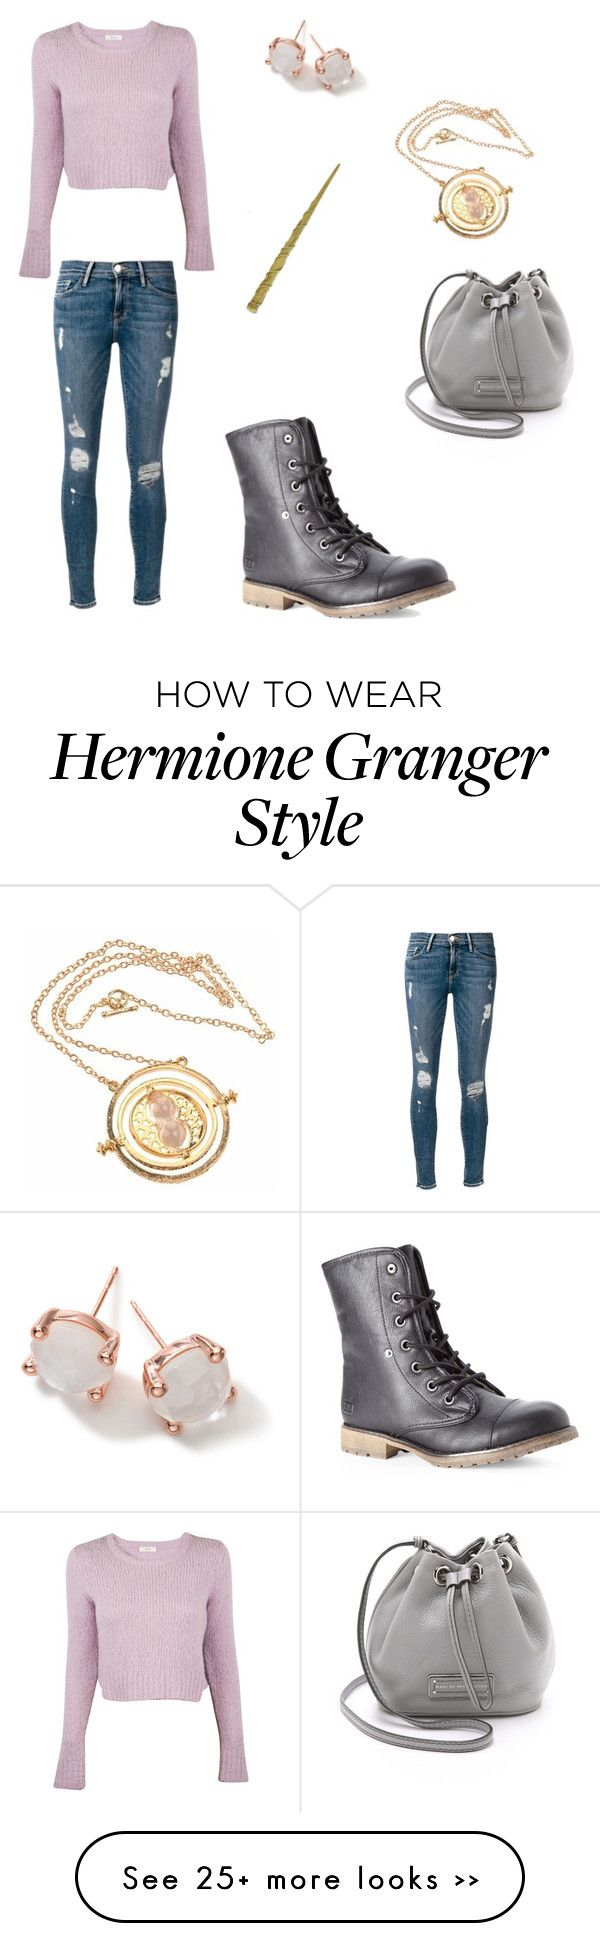 """""""Hermione Granger"""" by cecibo on Polyvore"""